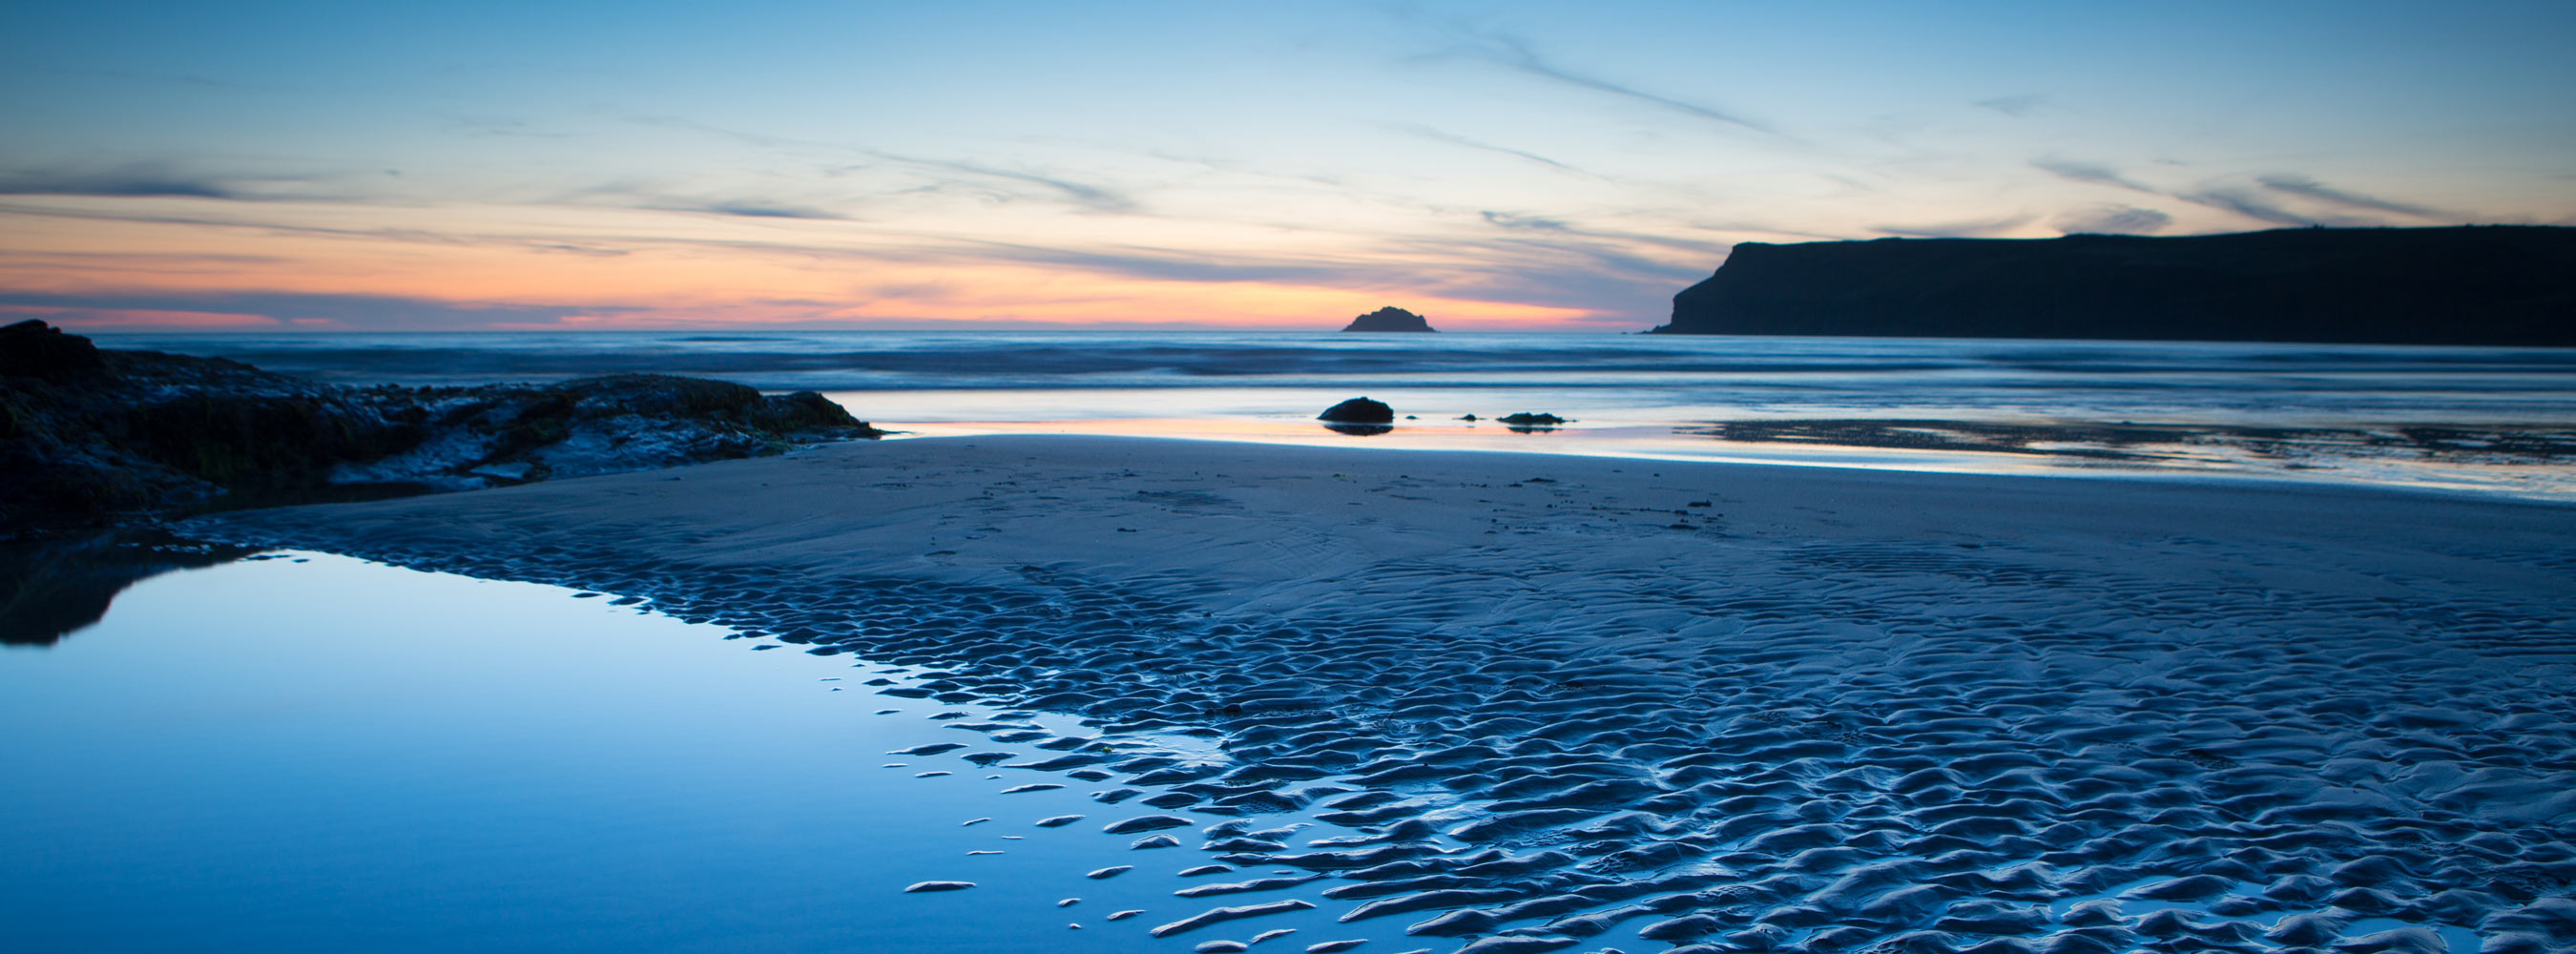 Polzeath Beach Sunet